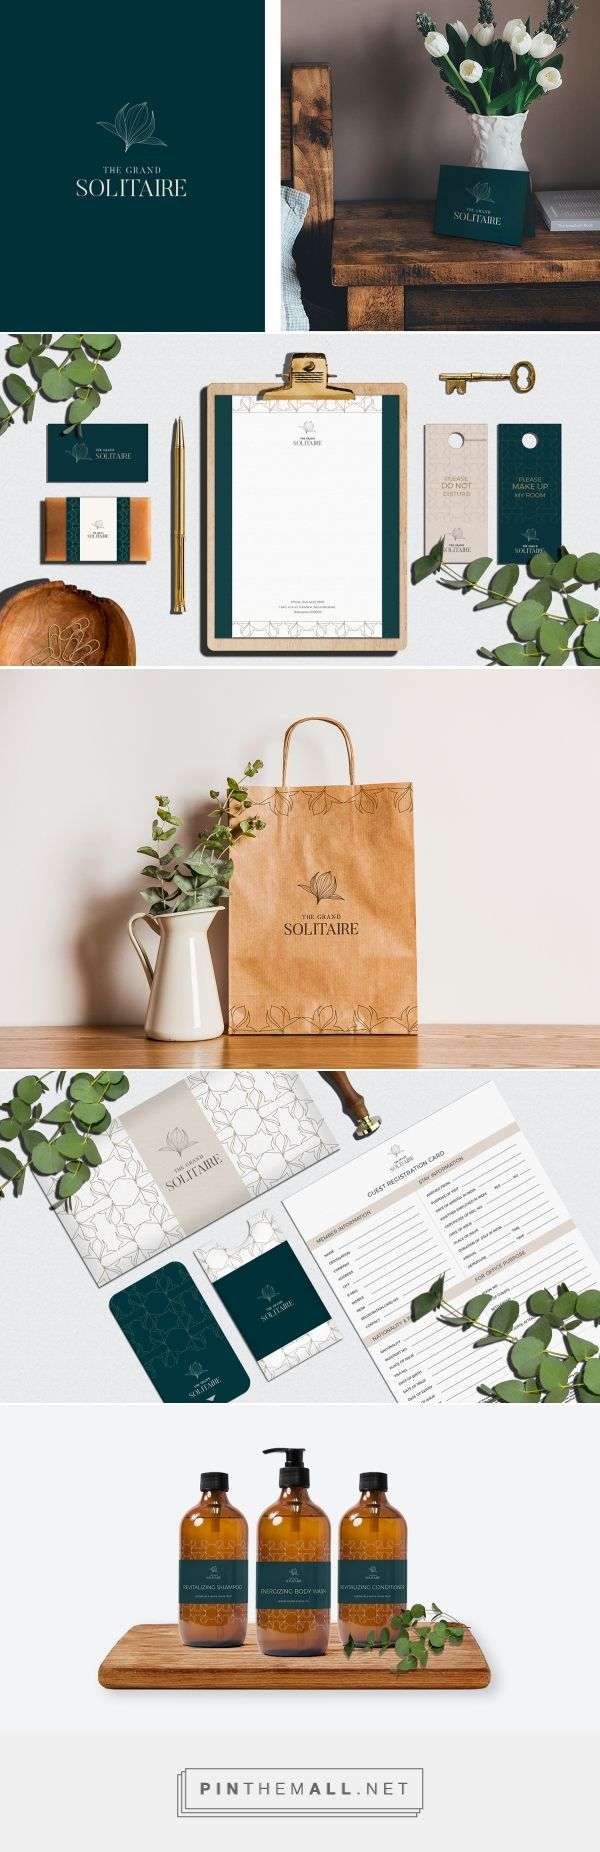 The Grand Solitaire Hotel Branding by Keertana Rumalla | Fivestar Branding Agency – Design and Branding Agency & Curated Inspiration Gallery